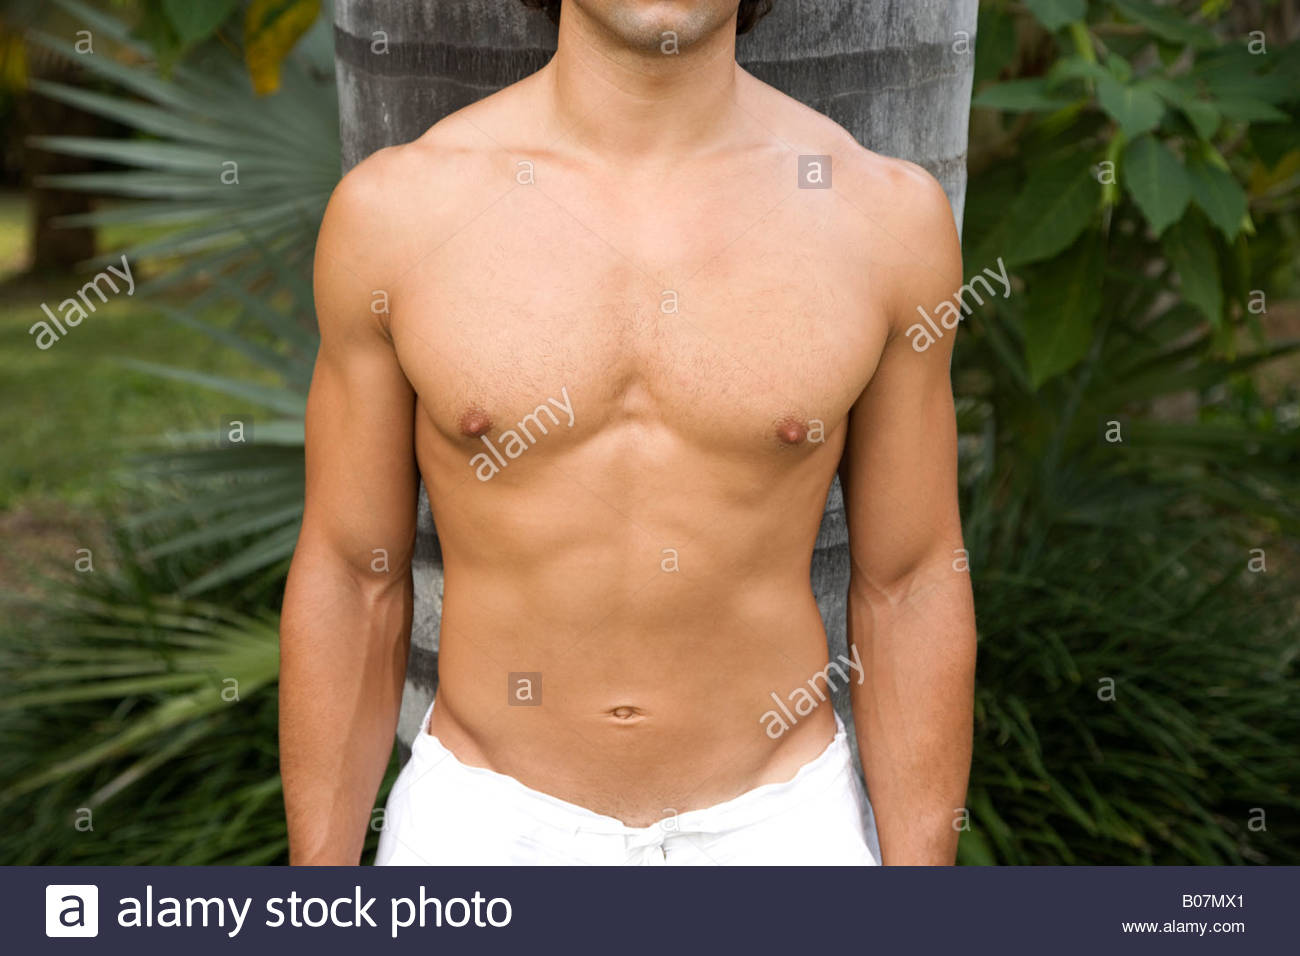 Close Up Shot Of A Muscular Mans Chest And Arms Stock Photo